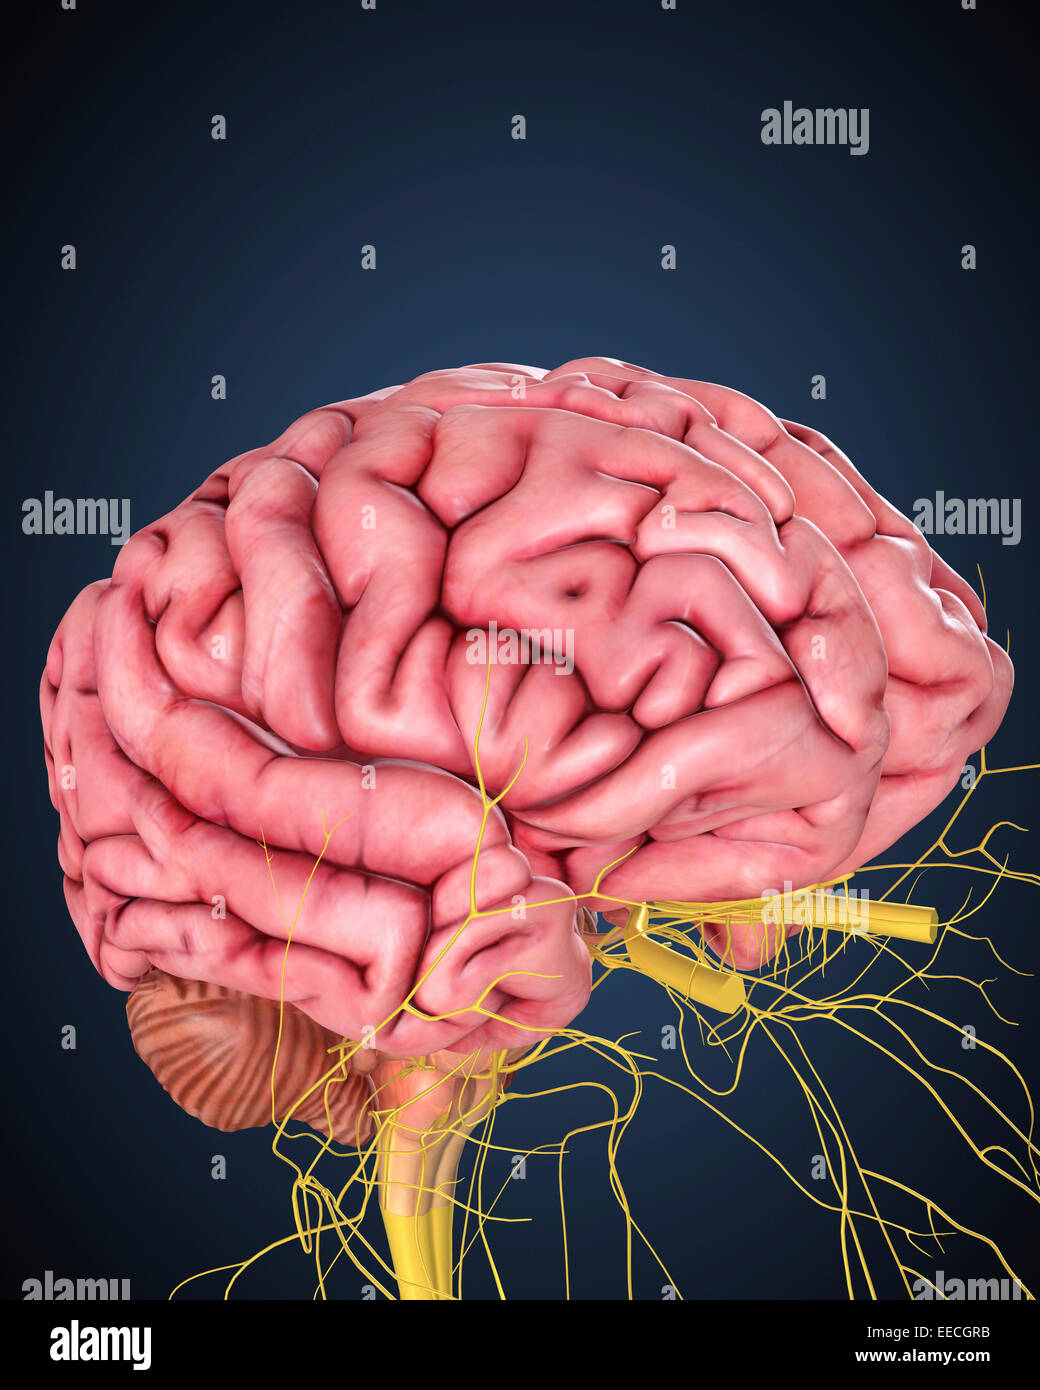 Human brain with nerves. - Stock Image